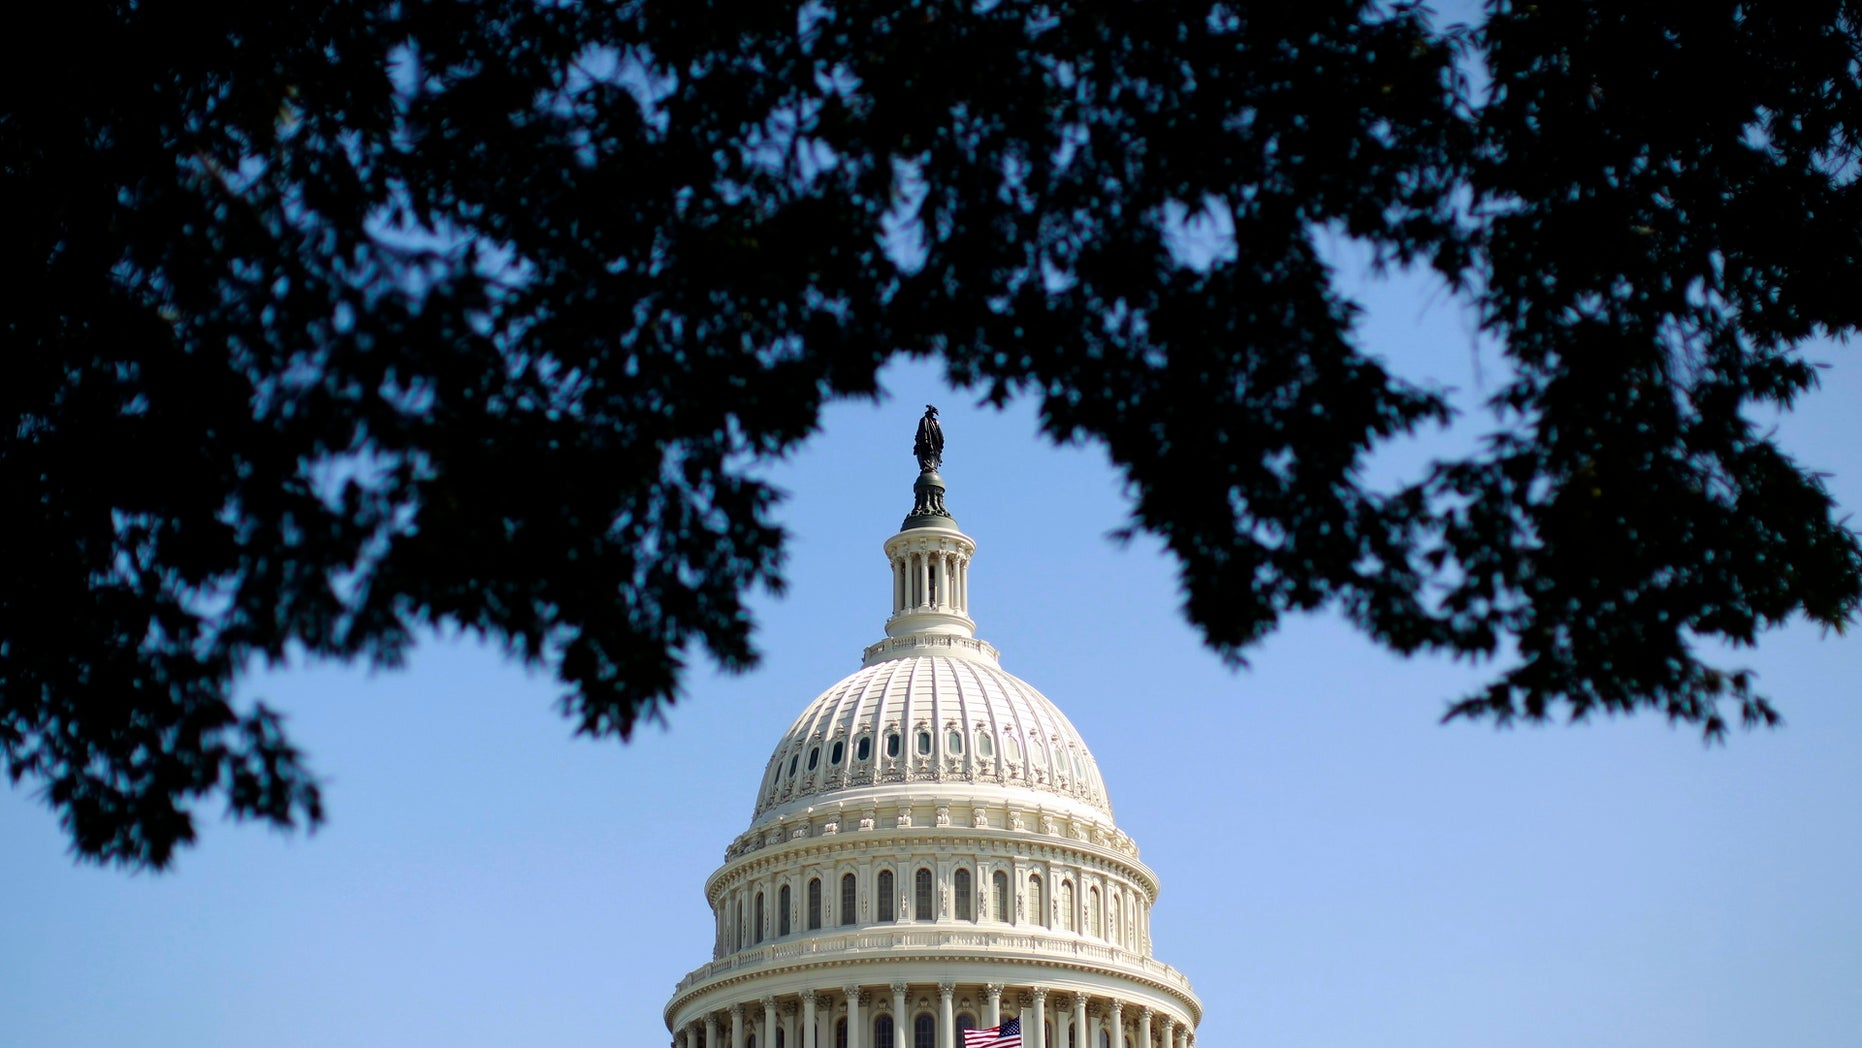 The dome of the U.S. Capitol is seen in Washington September 25, 2012.